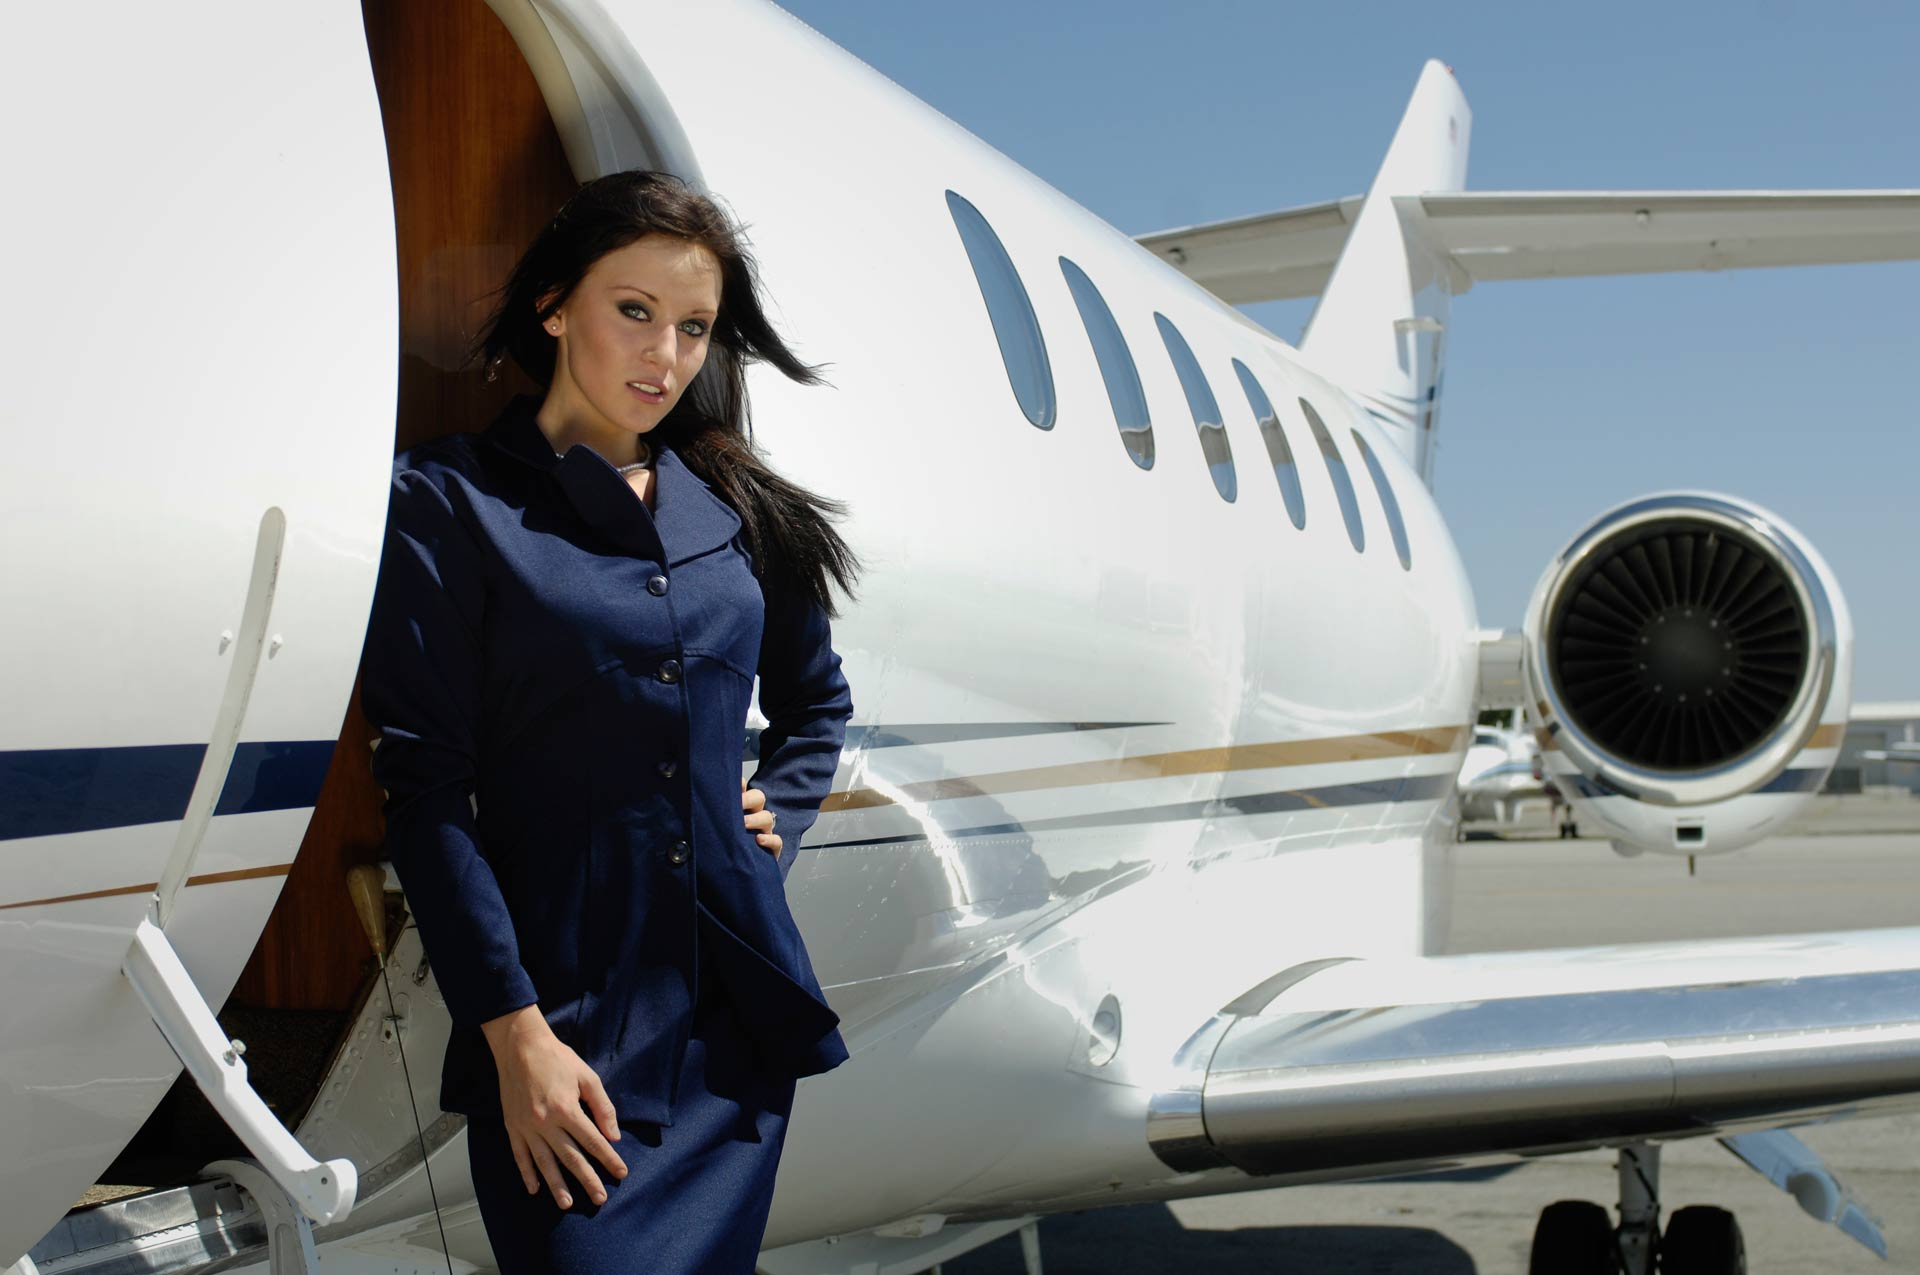 Get a quote for your Private Jet